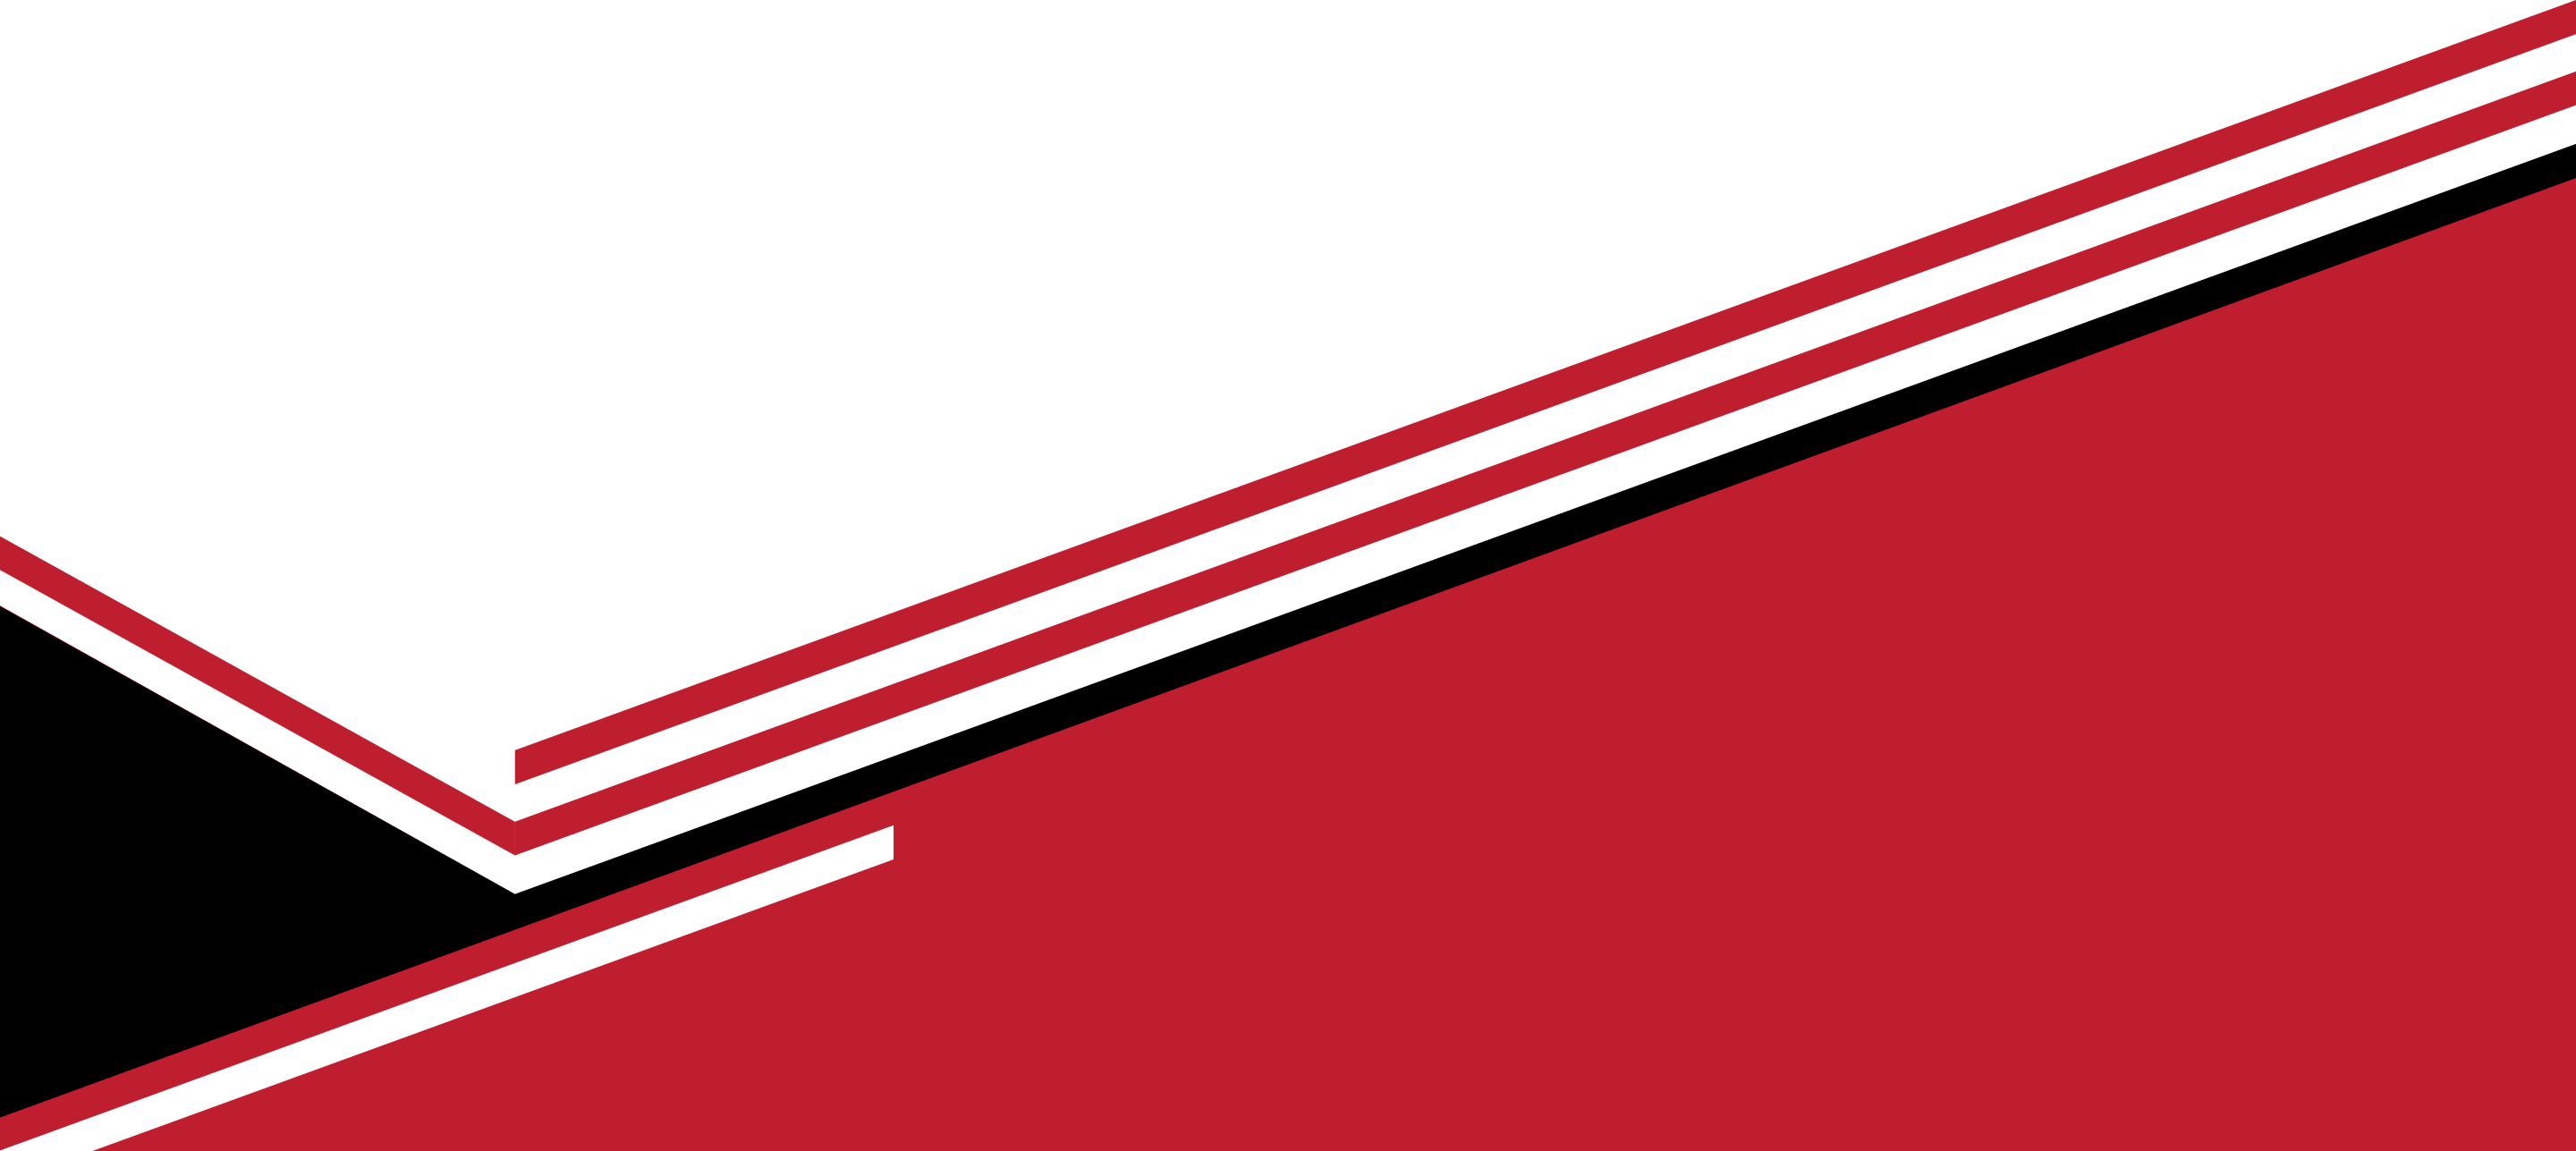 Download All Makes & Models - Red Line Background Vector PNG Image With No  Background - PNGkey.com